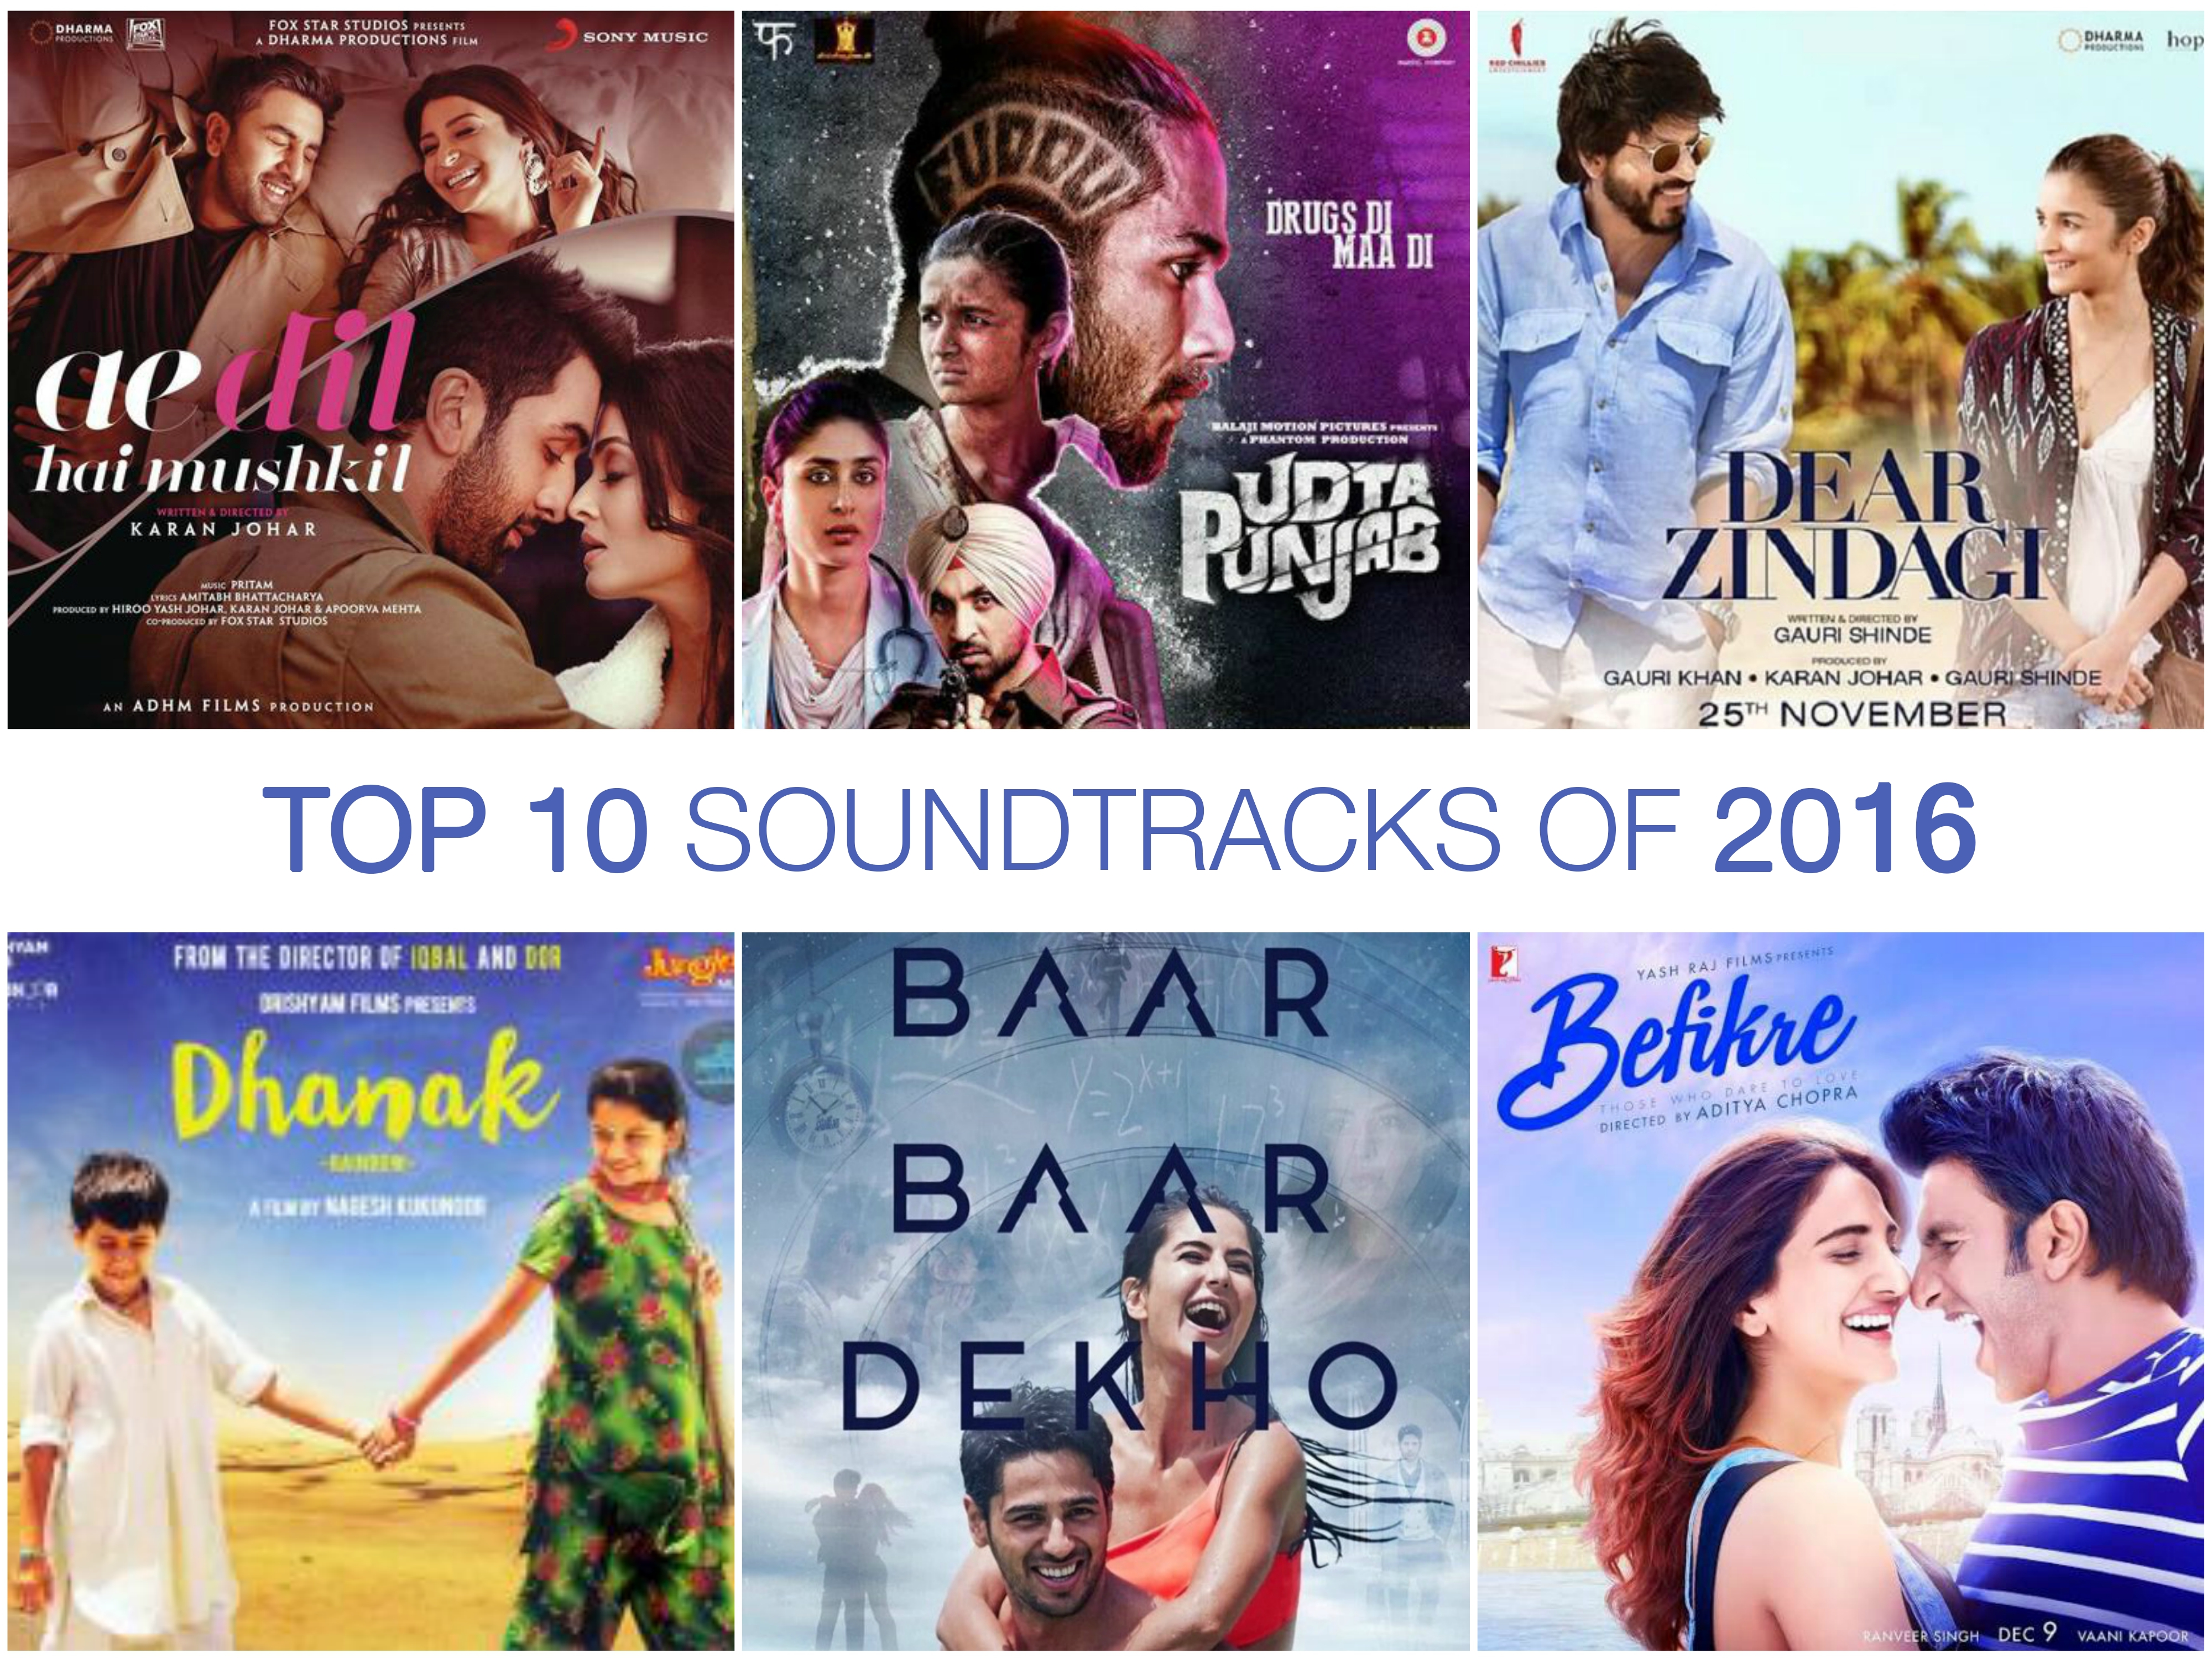 Top 10 Bollywood Soundtracks | 2016 Roundup